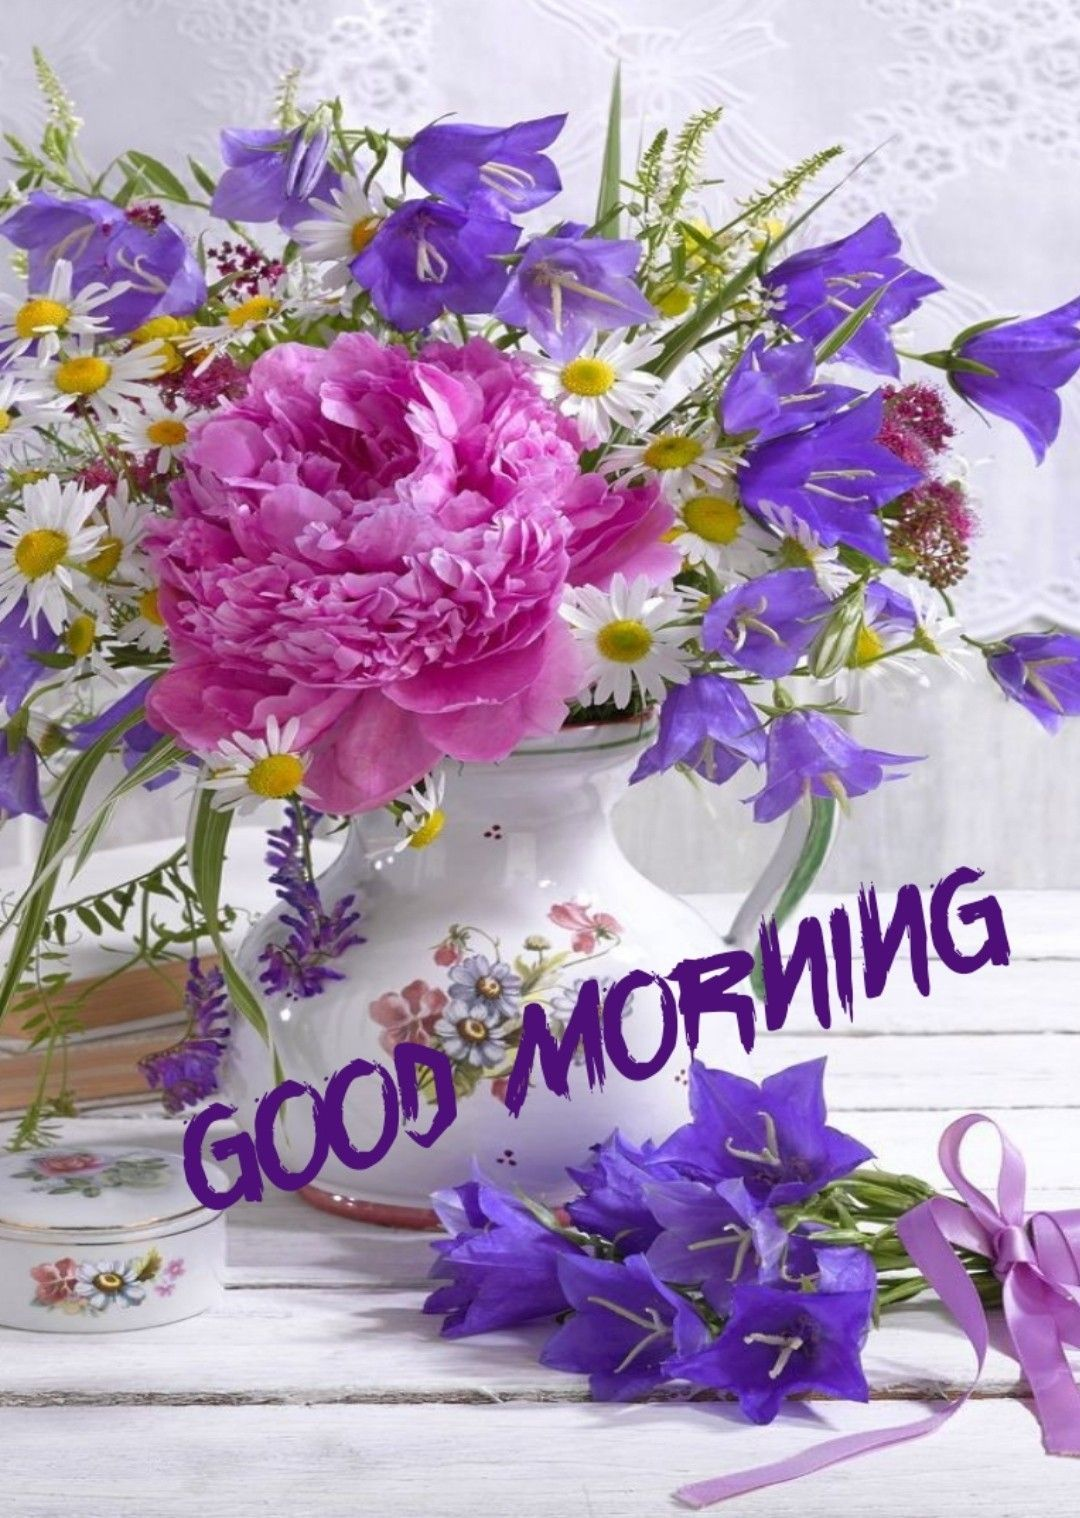 Good Morning Greetings Photo Of The Day Mornings In 2020 Good Morning Flowers Quotes Good Morning Flowers Romantic Good Morning Messages